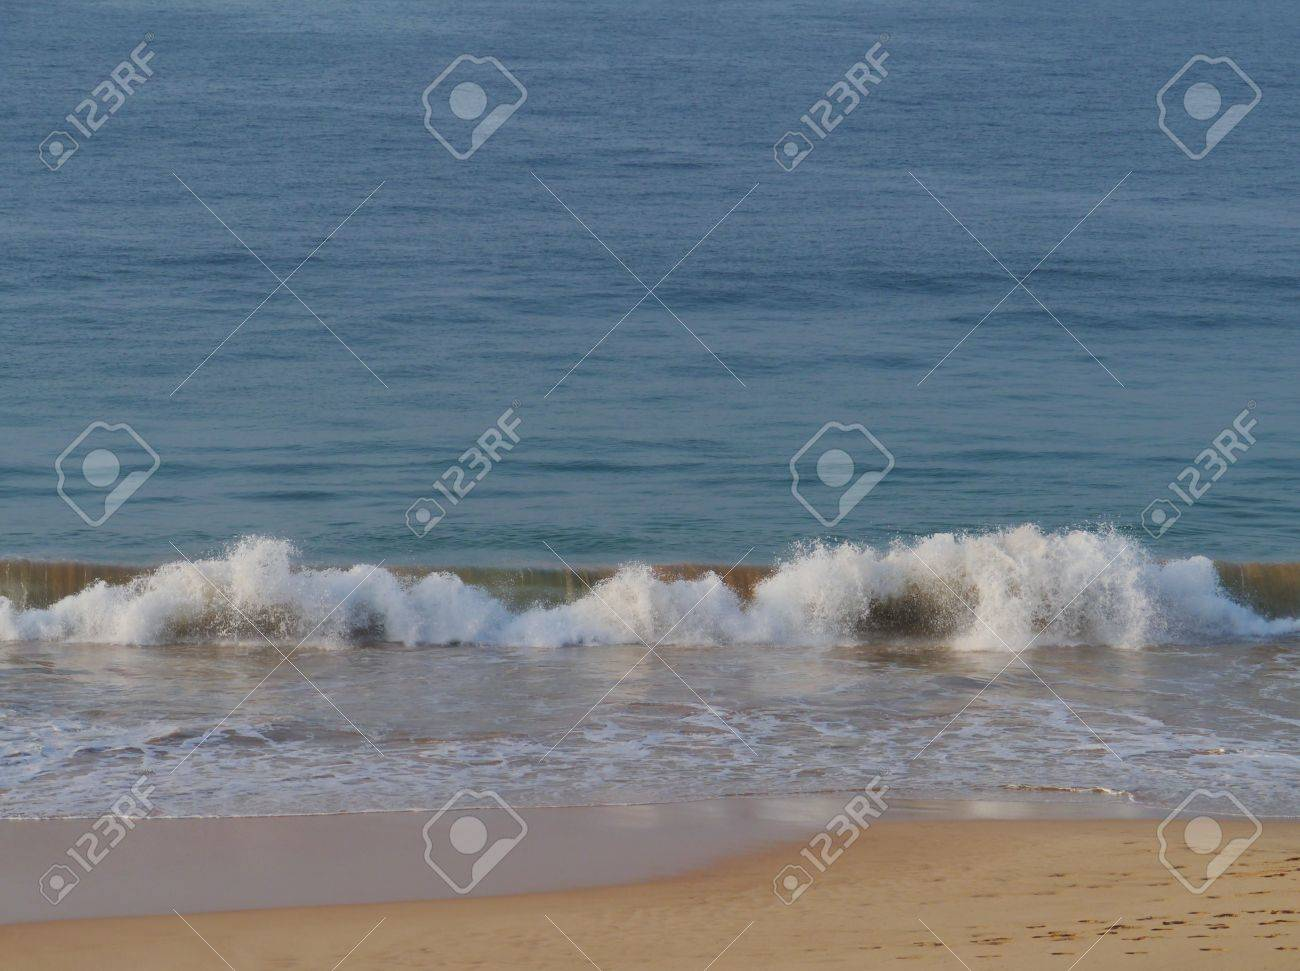 The Indian ocean with waves and breakers on the coast of Sri Lanka Stock Photo - 17854720